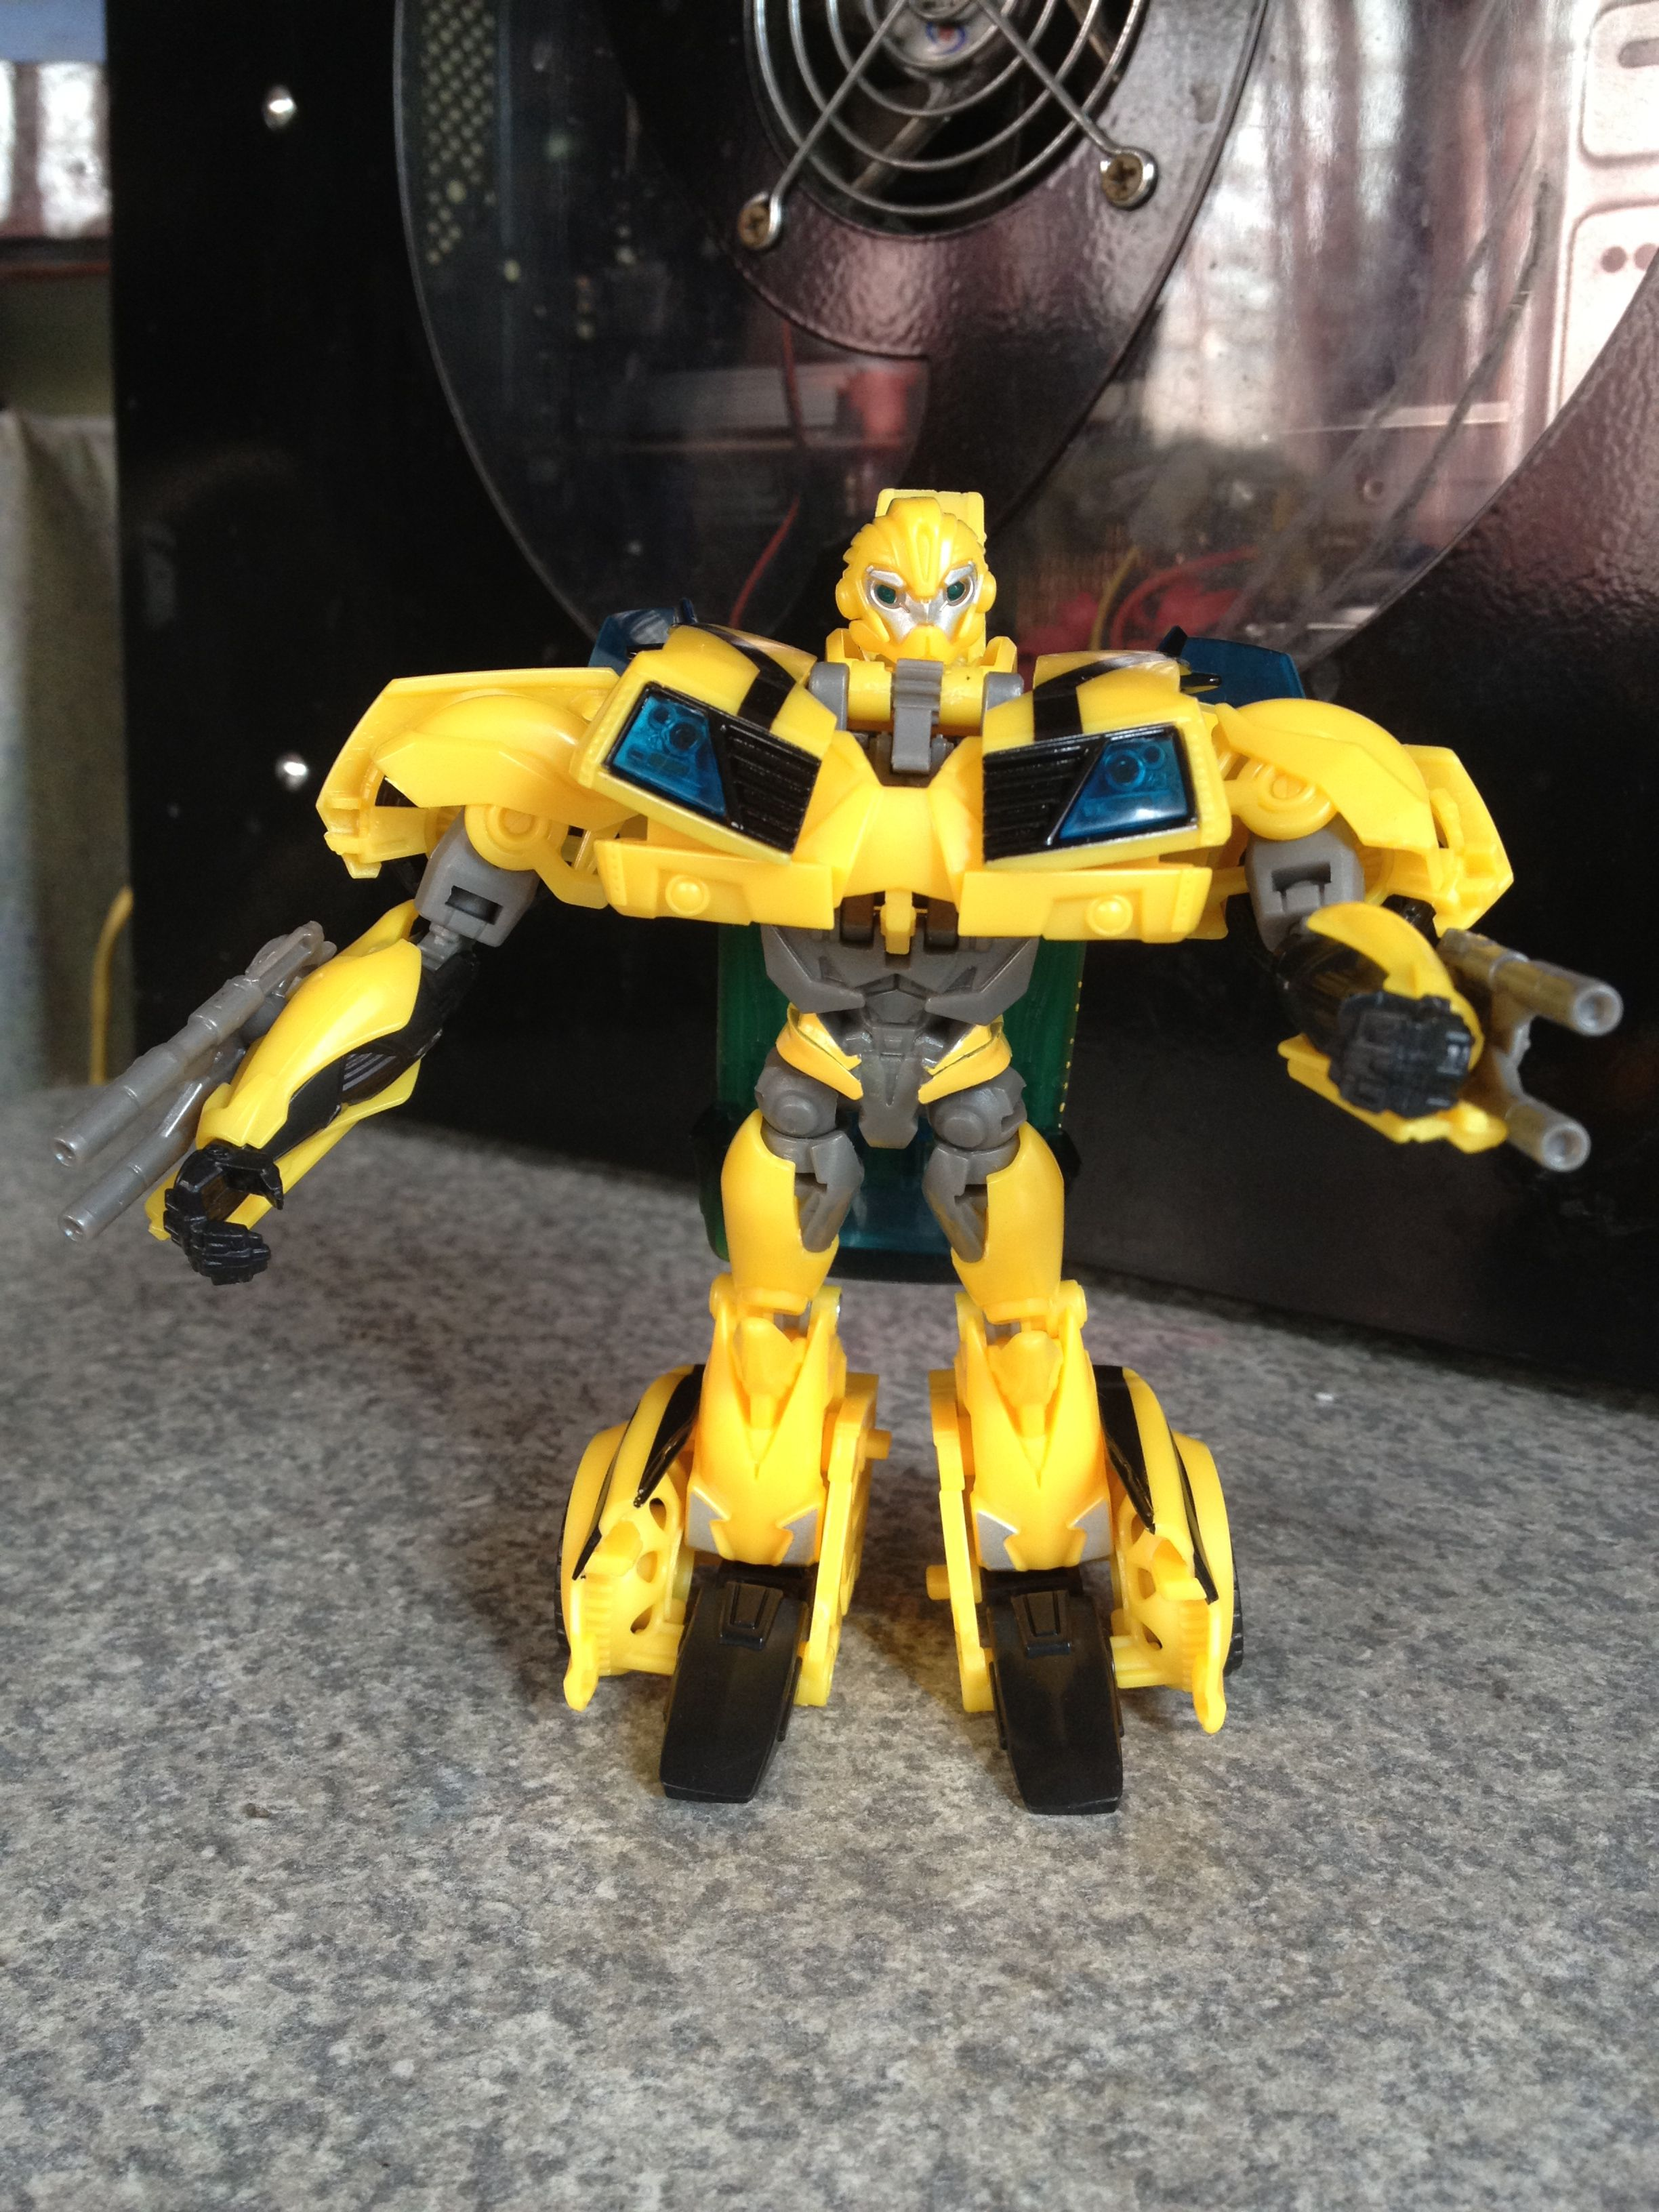 Transformers Prime Robots in Disguise Bumblebee (robot mode)